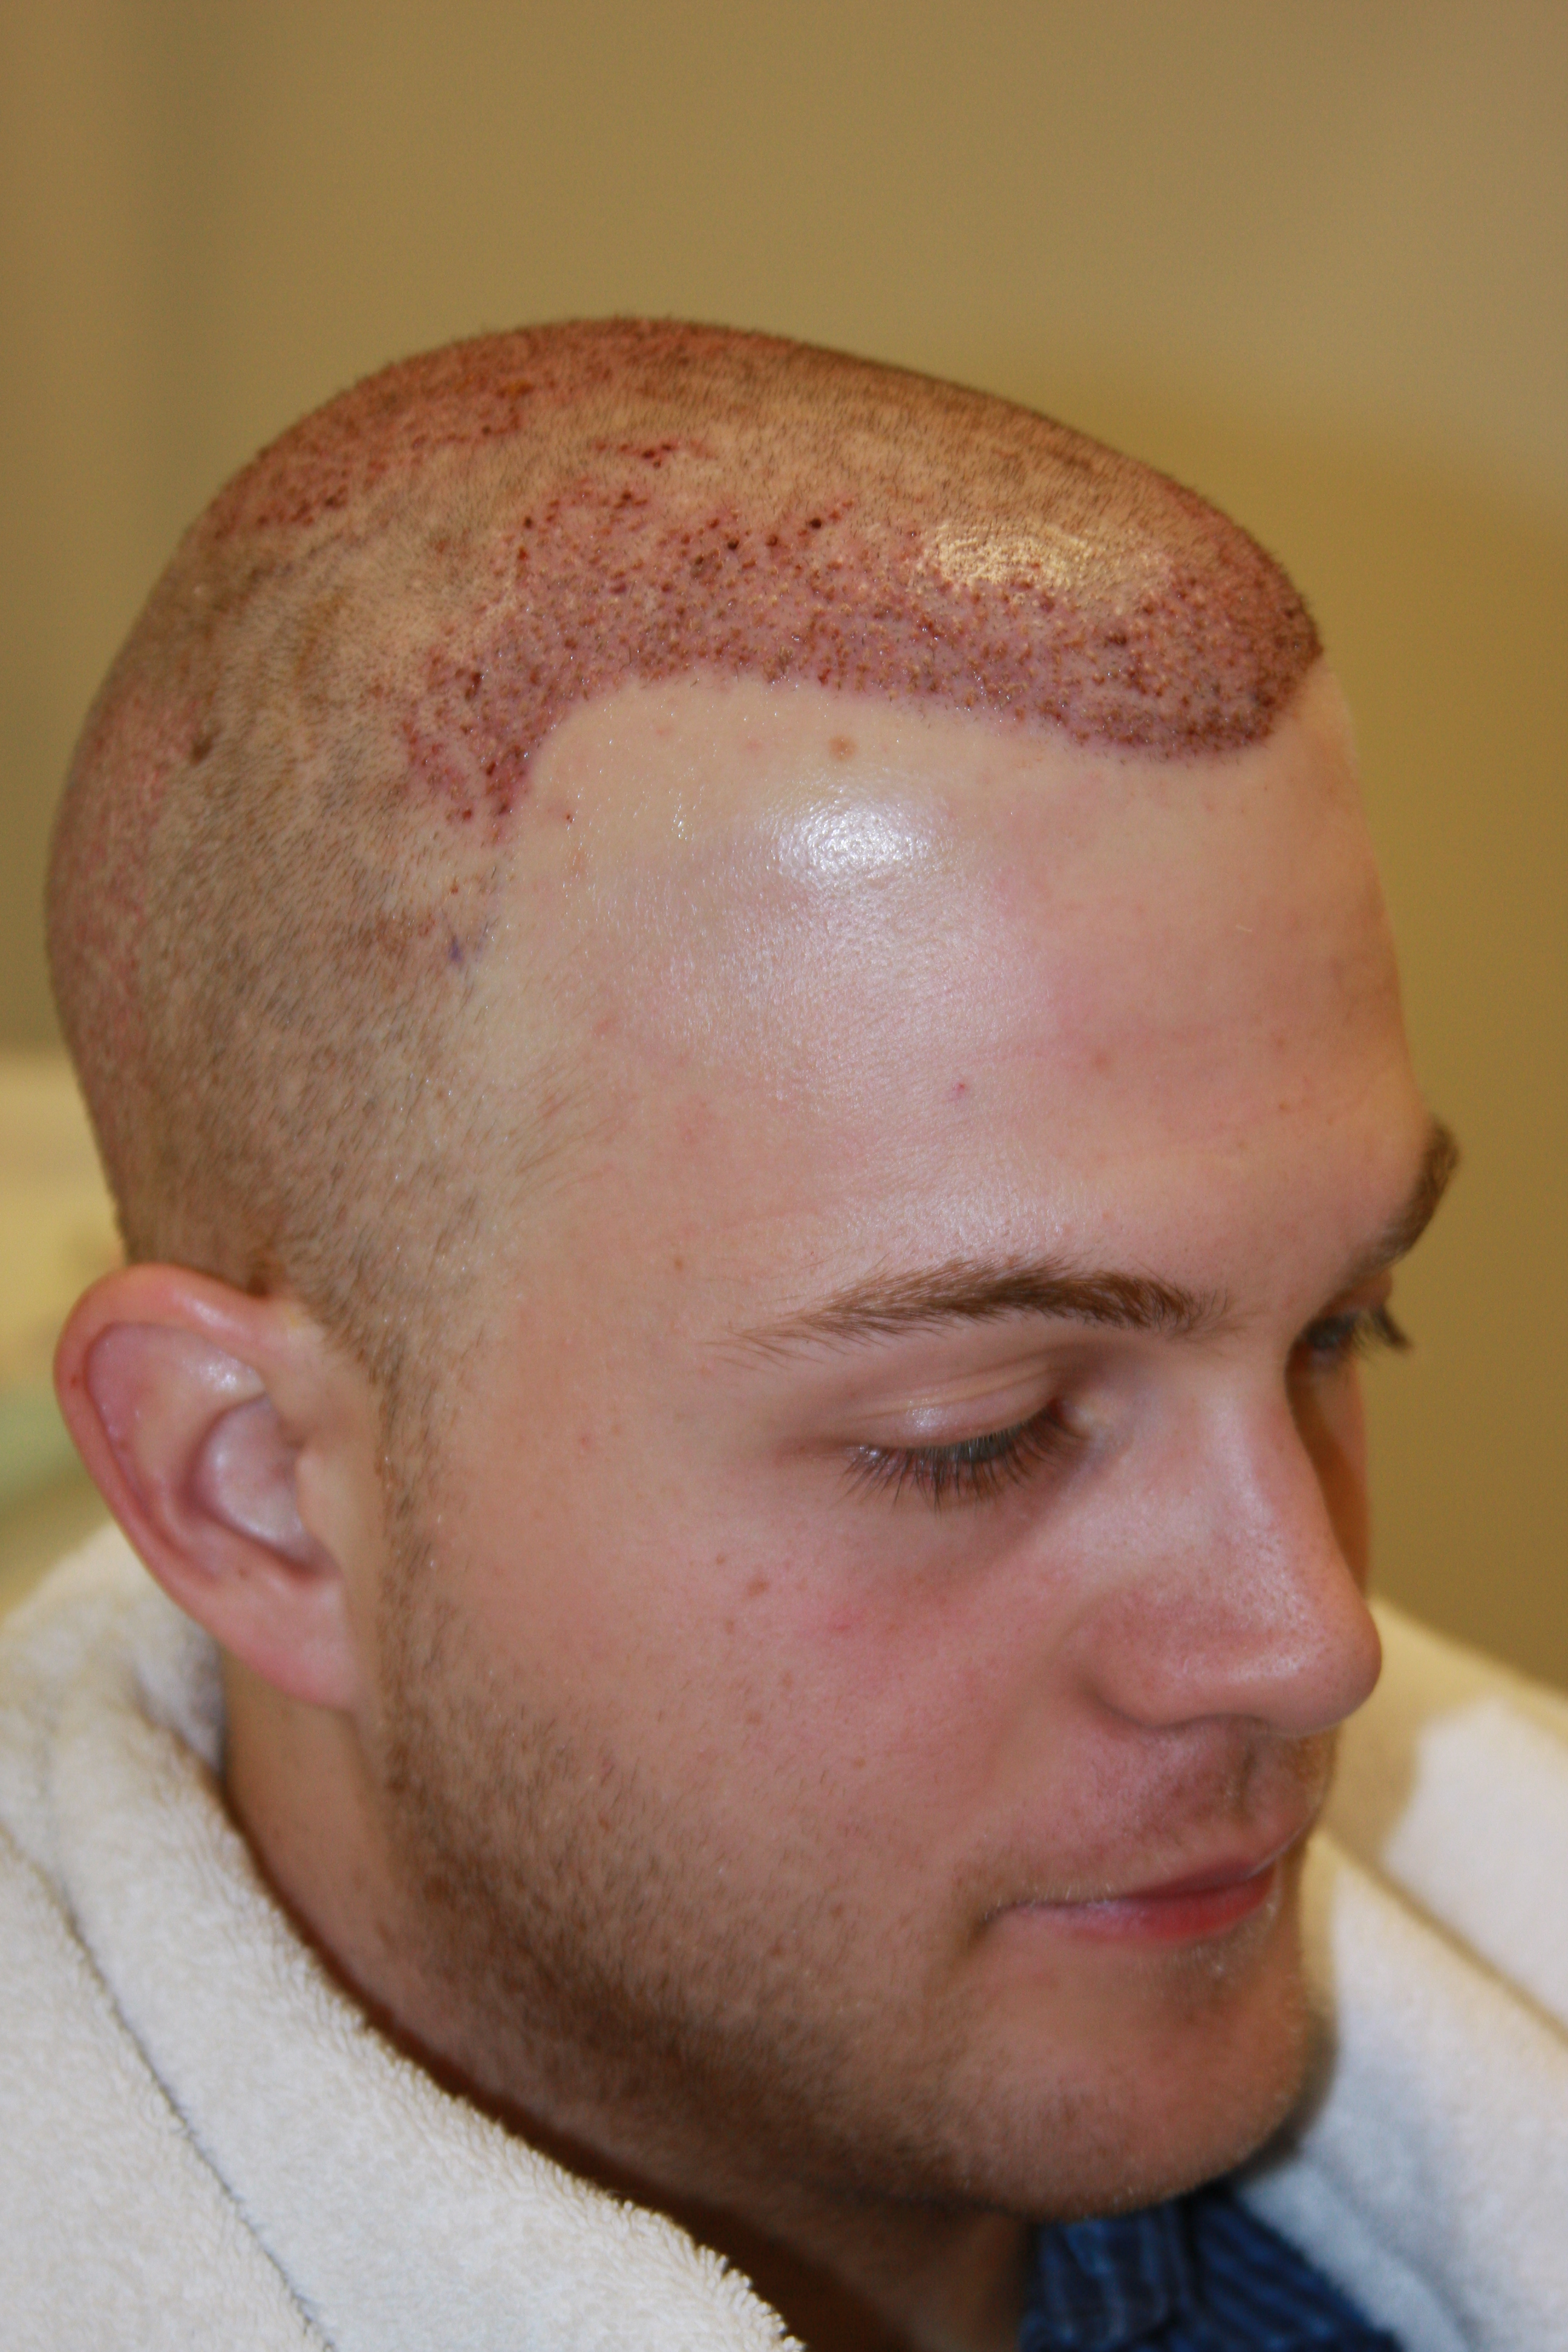 Remarkable, Hair plugs trypophobia